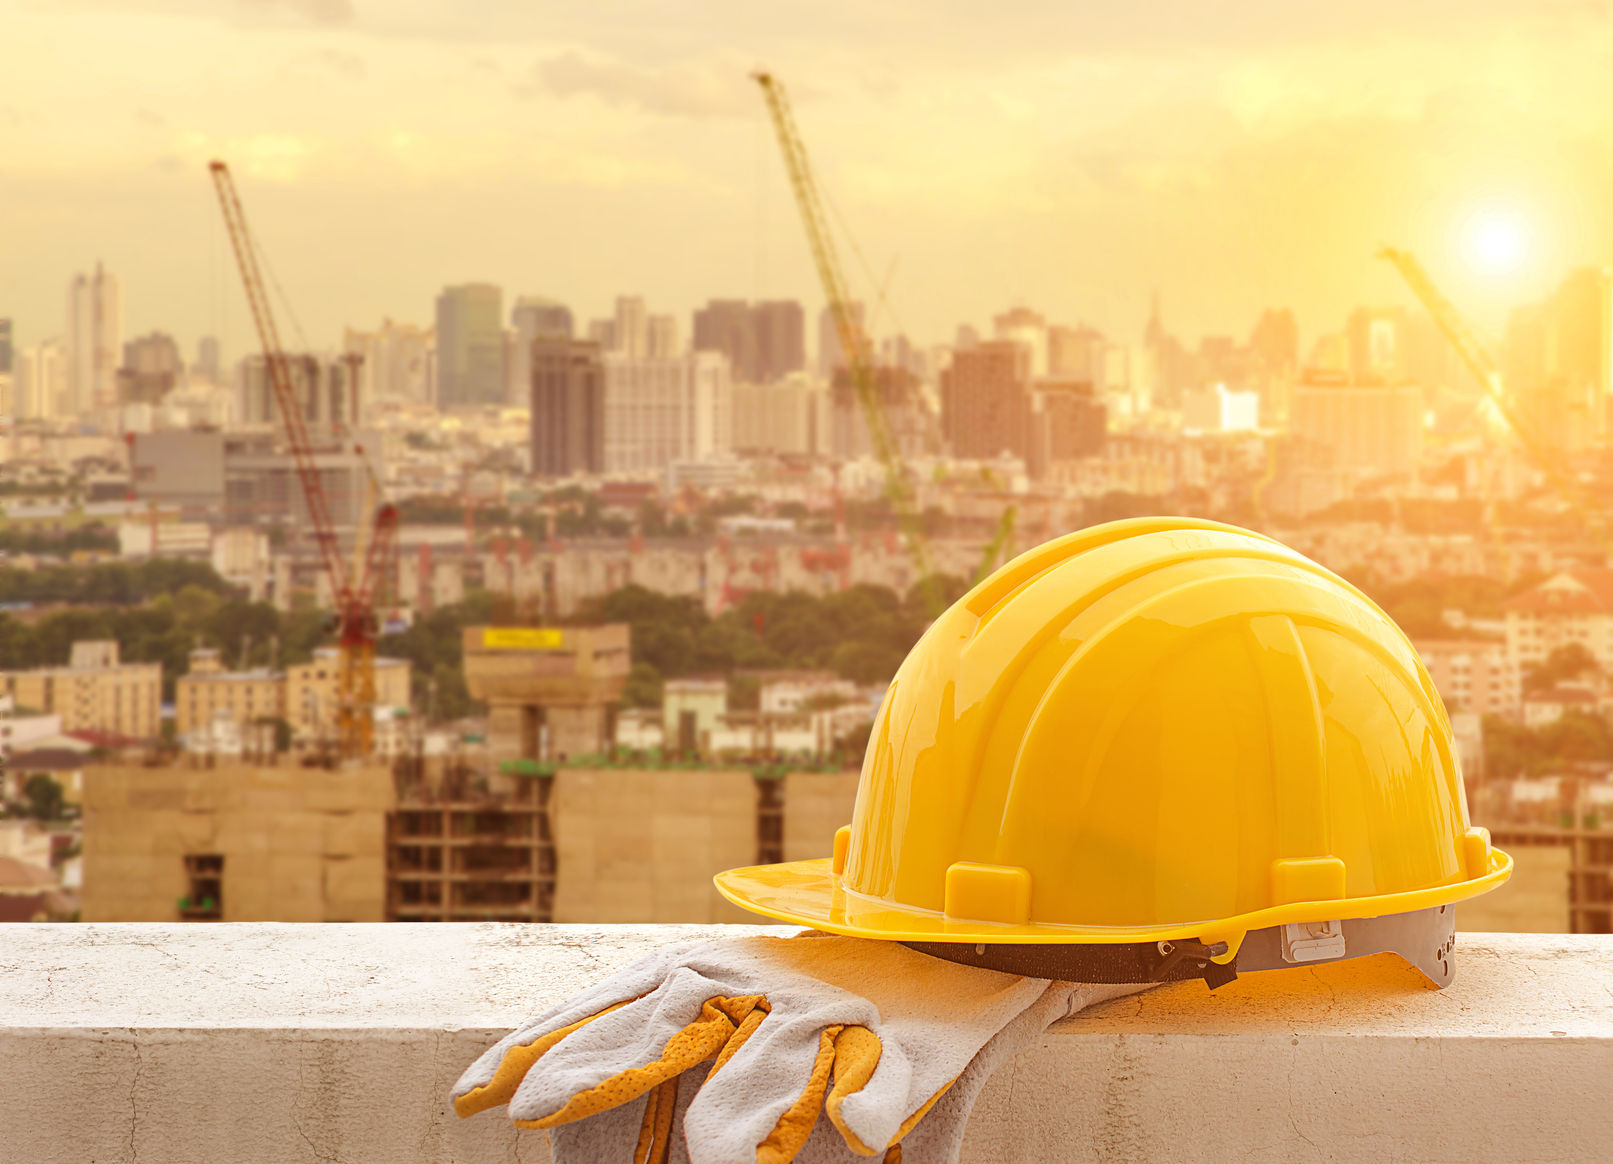 50498731 - yellow hard hat on construction site